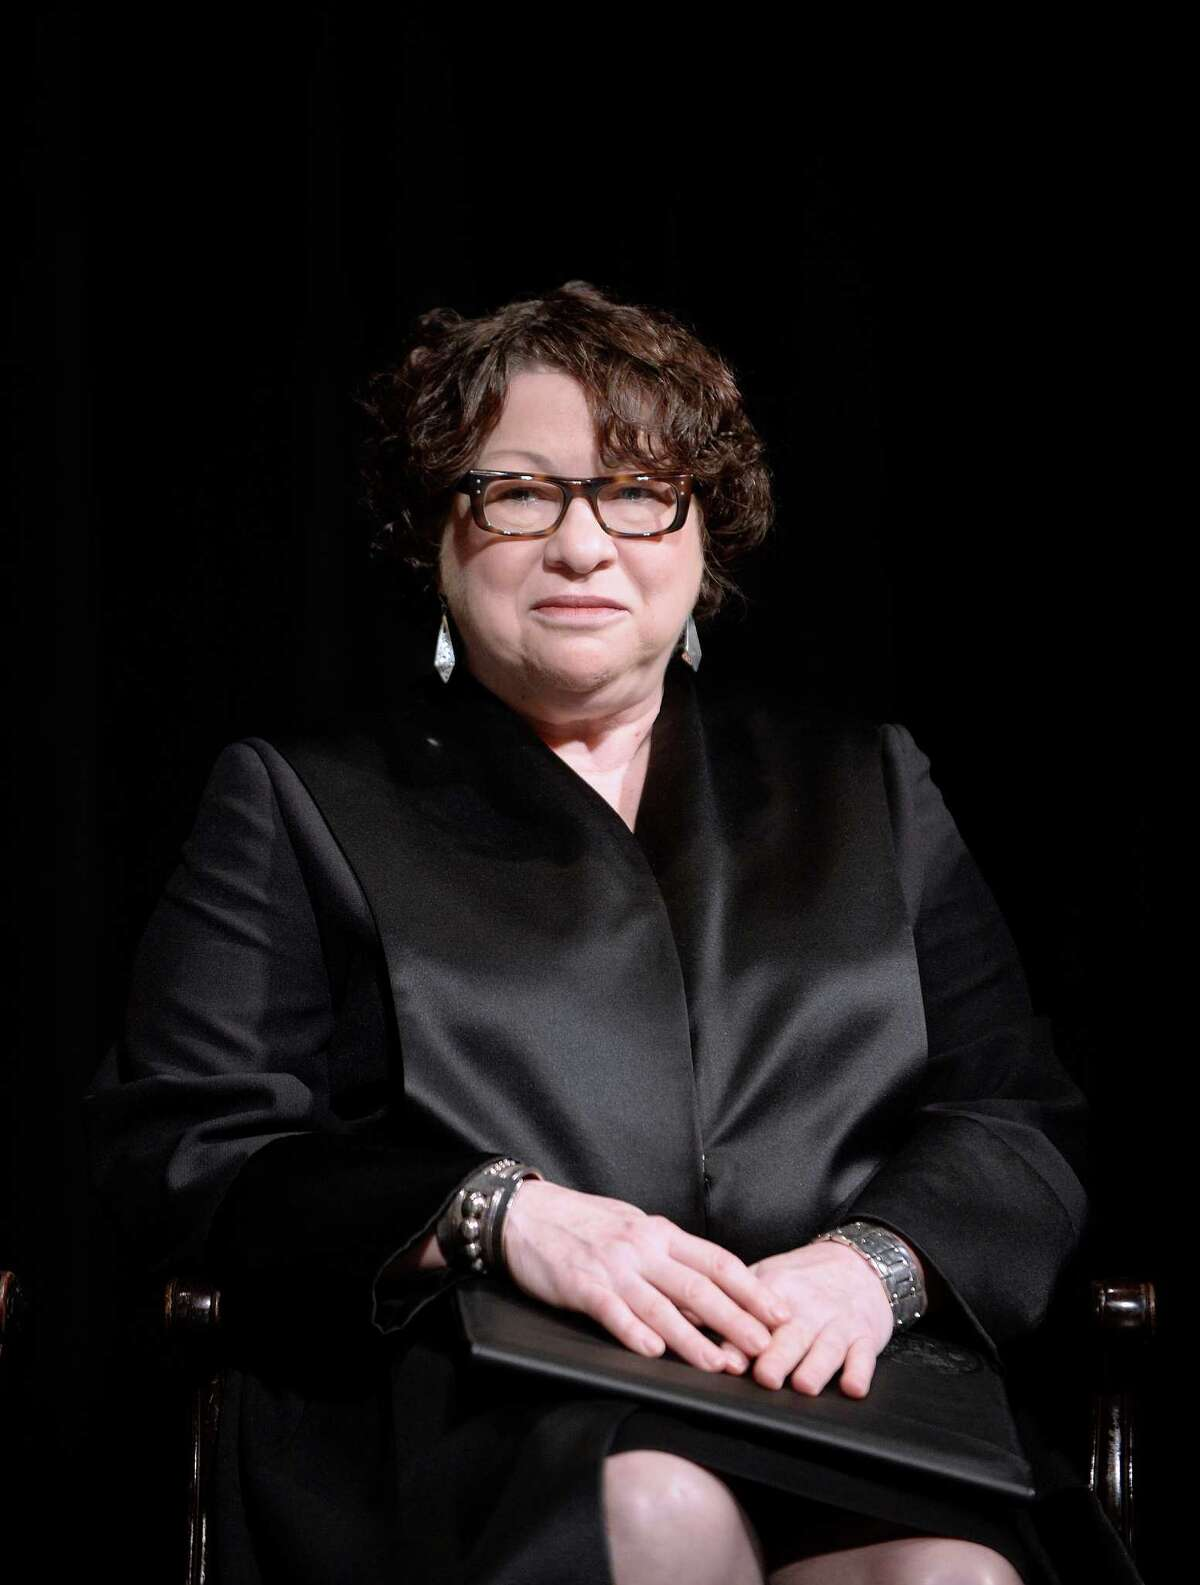 WASHINGTON, DC - JUNE 17: (AFP OUT) U.S. Supreme Court Justice Sonia Sotomayor looks on before administering the oath of office for Attorney General Loretta Lynch at the Warner Theatre on June 17, 2015 in Washington, DC. Lynch was officially sworn in by Vice President Joe Biden as the 83rd Attorney General of the United States on April 27, 2015. She is the first African-American woman to serve in the position. (Photo by Olivier Douliery - Pool/Getty Images)